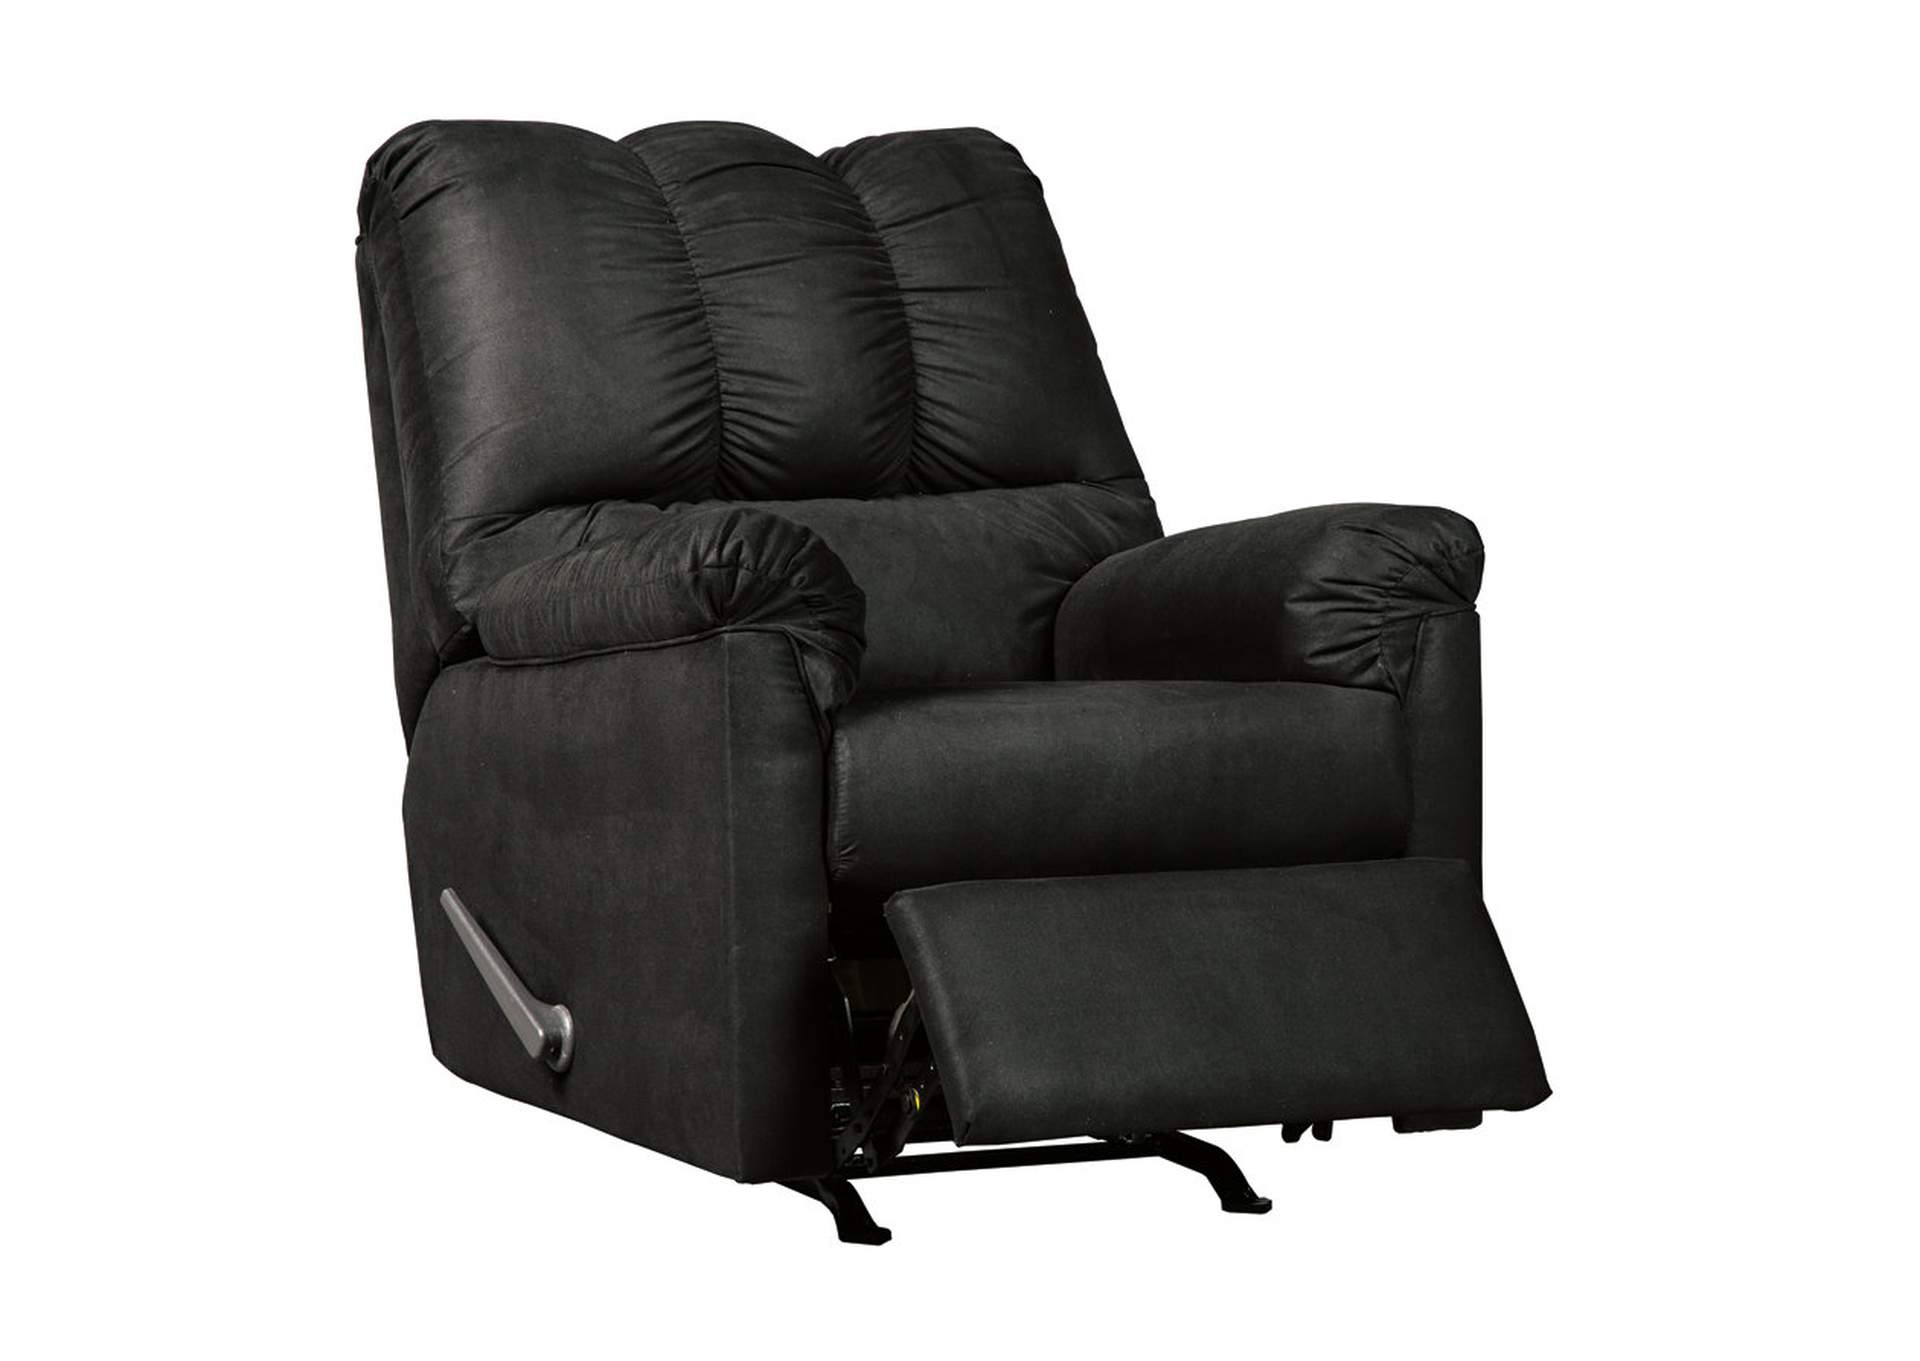 Darcy Black Rocker Recliner,Signature Design By Ashley